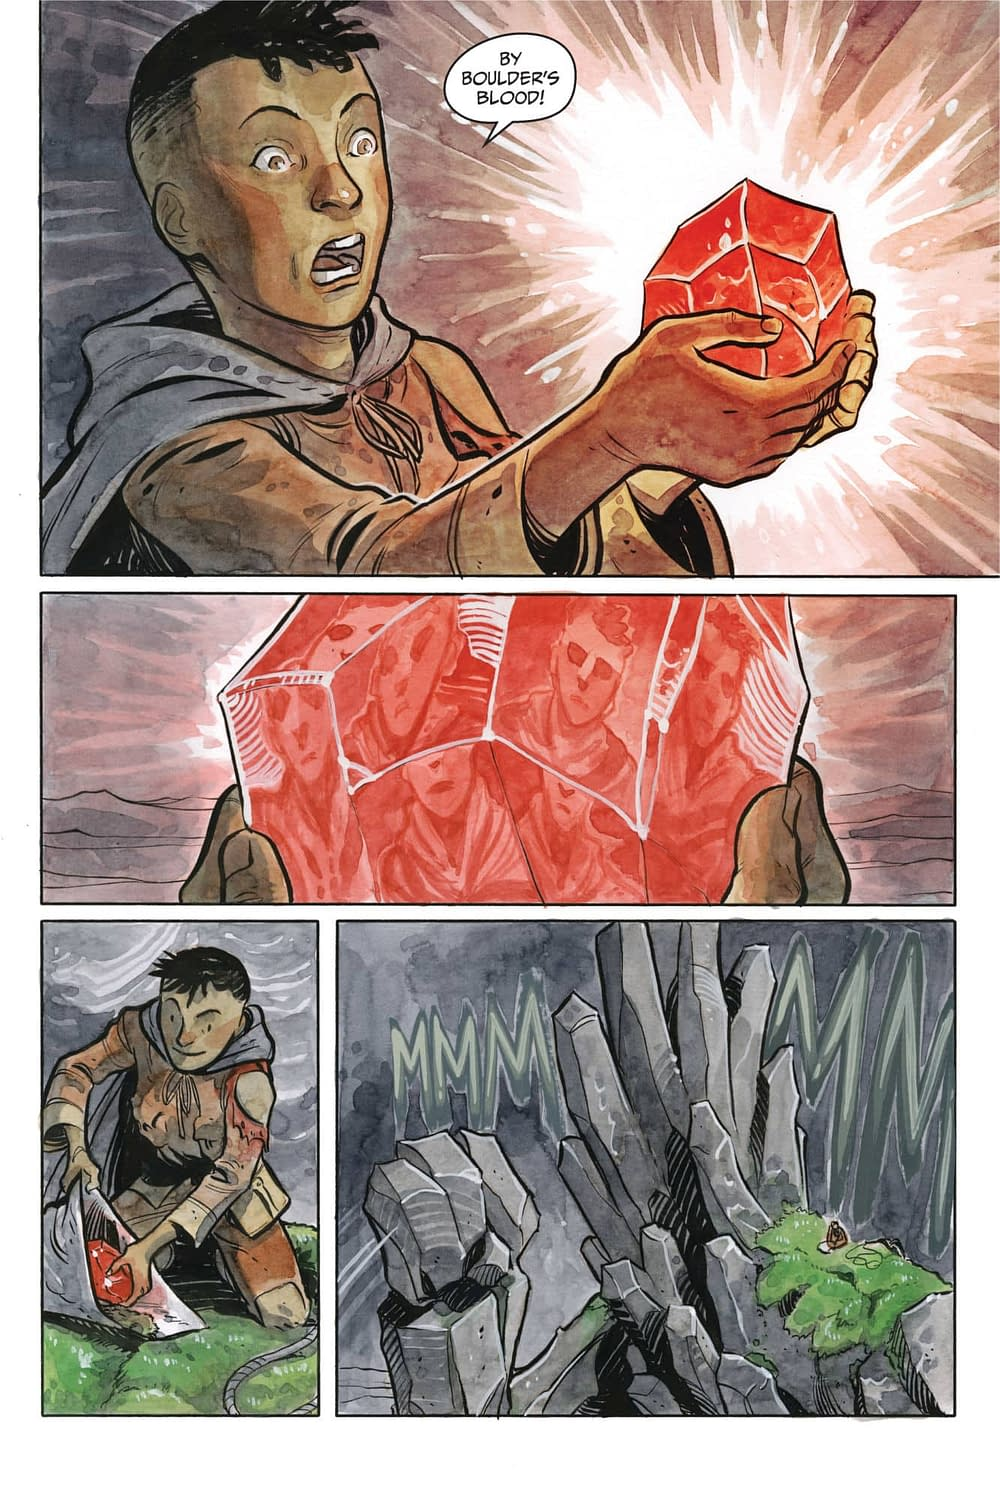 11 Pages from Kel McDonald and Tyler Crook's ComiXology Original Series Stone King, Debuting Tomorrow